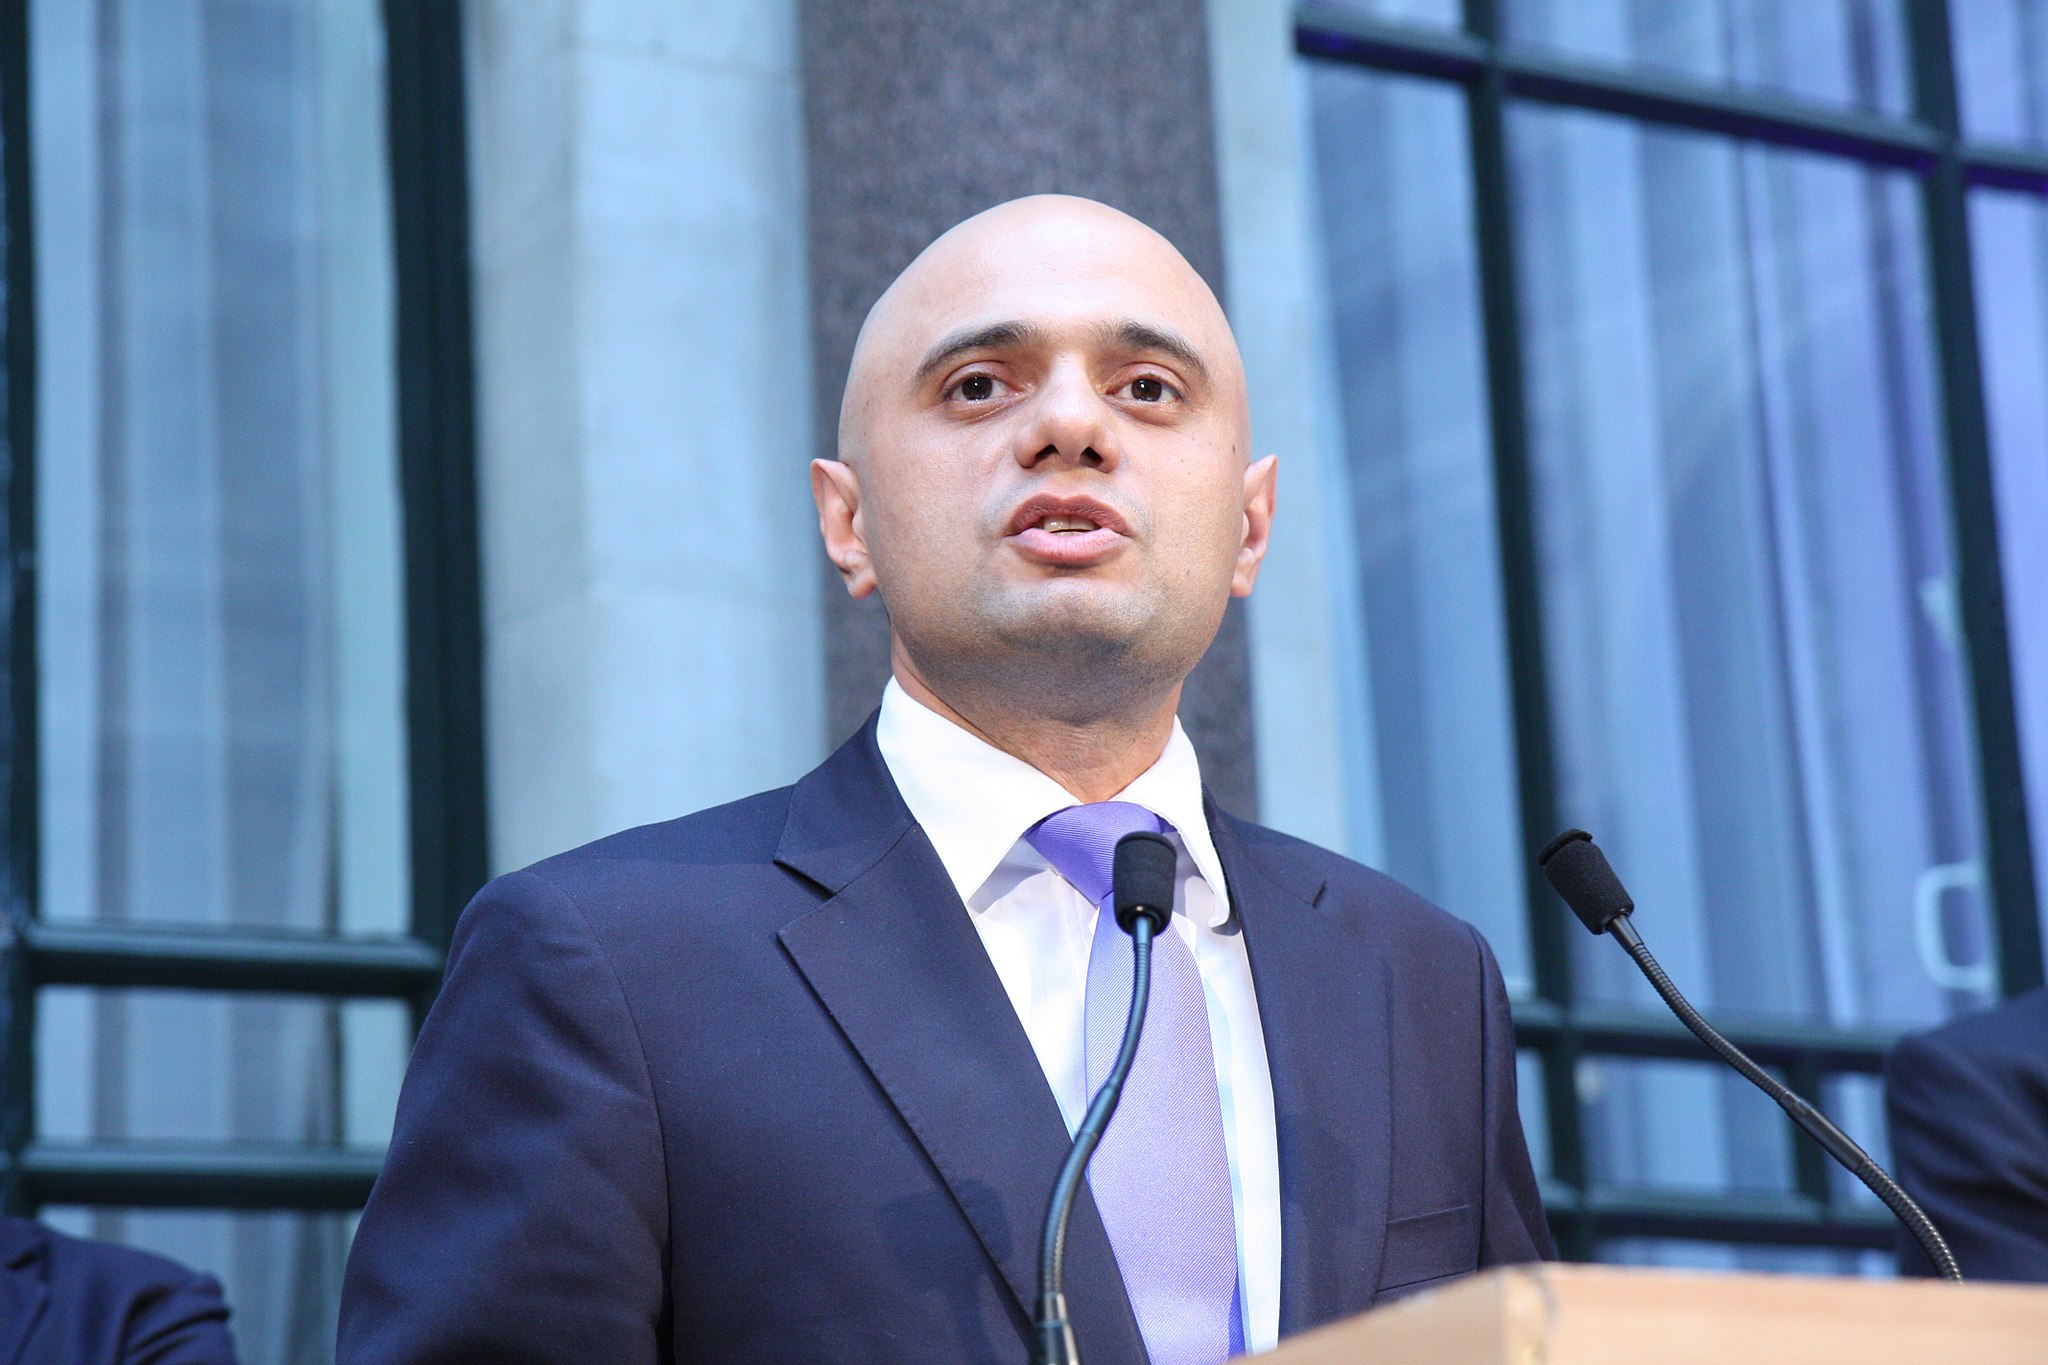 https://commons.wikimedia.org/wiki/File:Secretary_of_State_for_Culture,_Media_and_Sport_Sajid_Javid.jpg